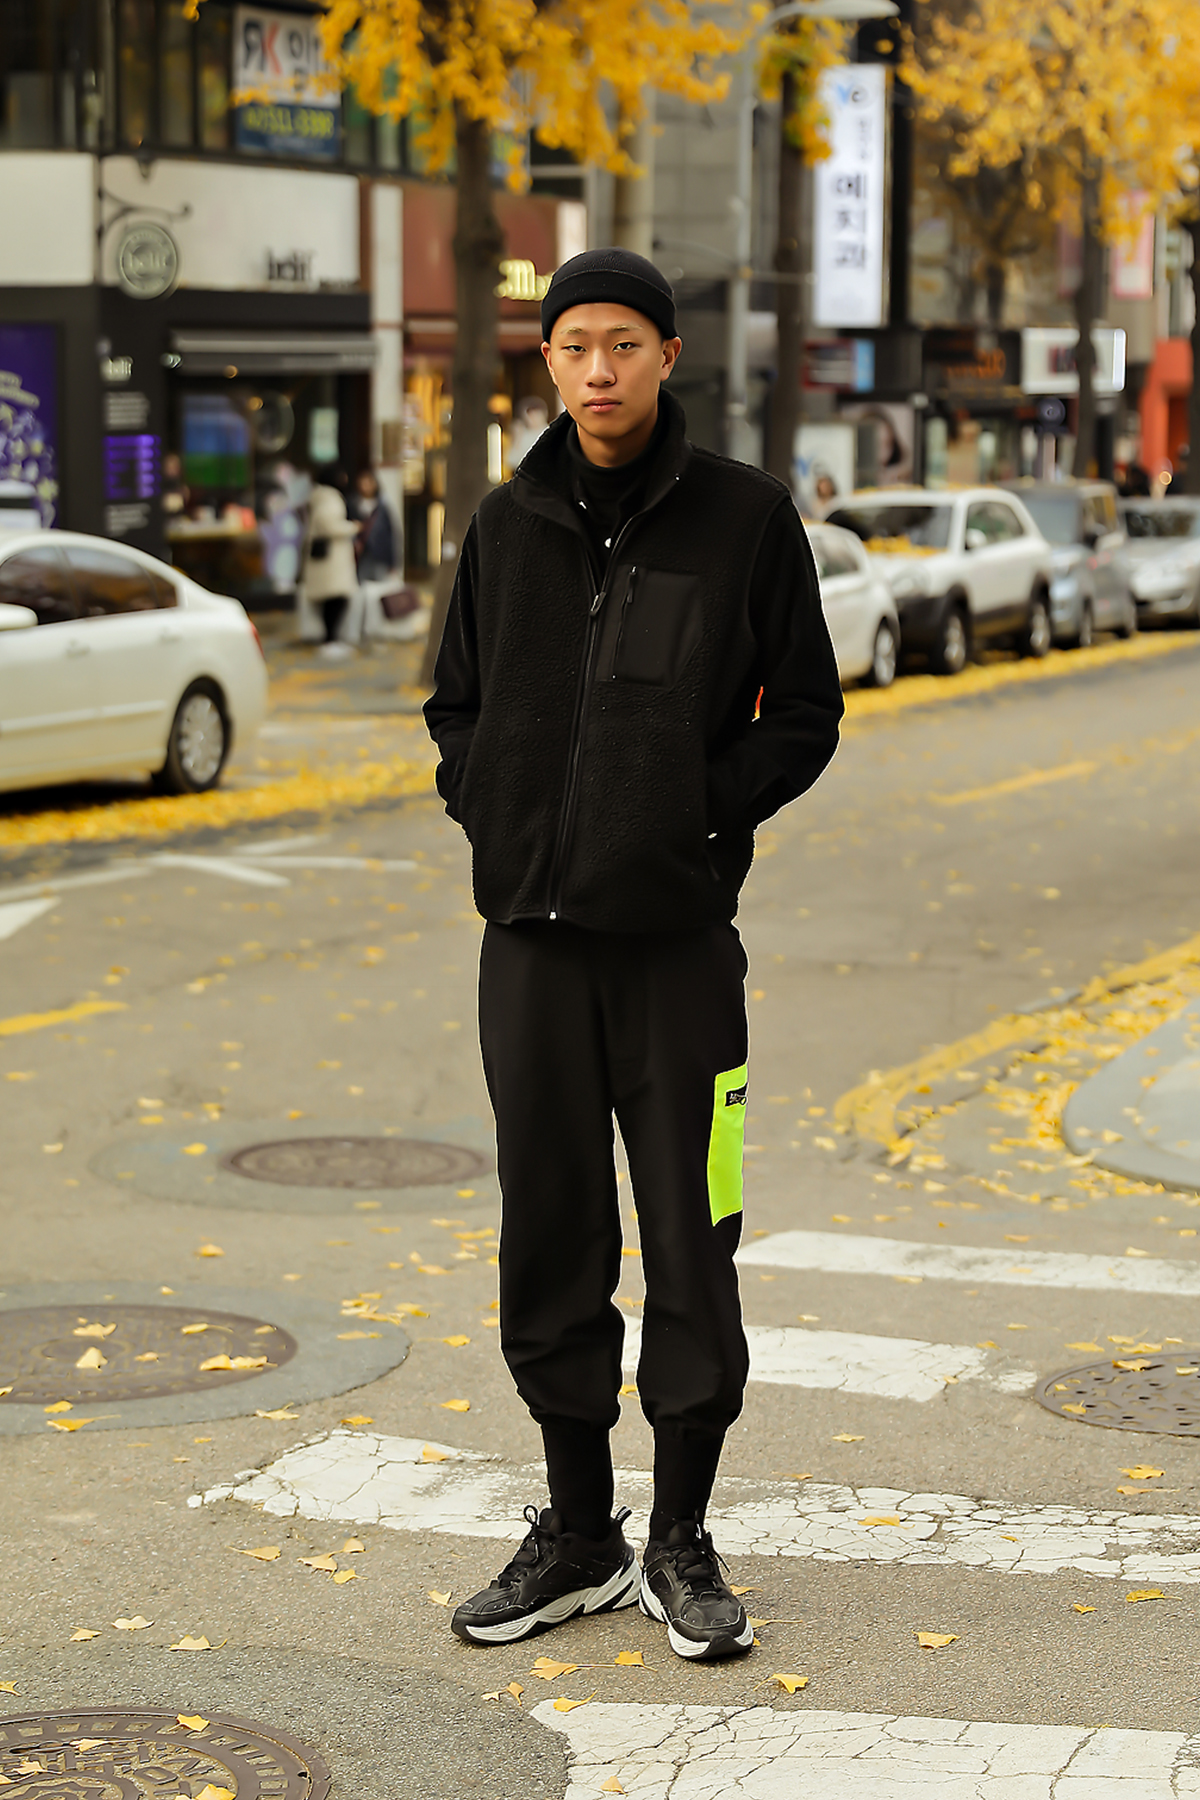 Men winter street style the second week of november 2018 inseoul